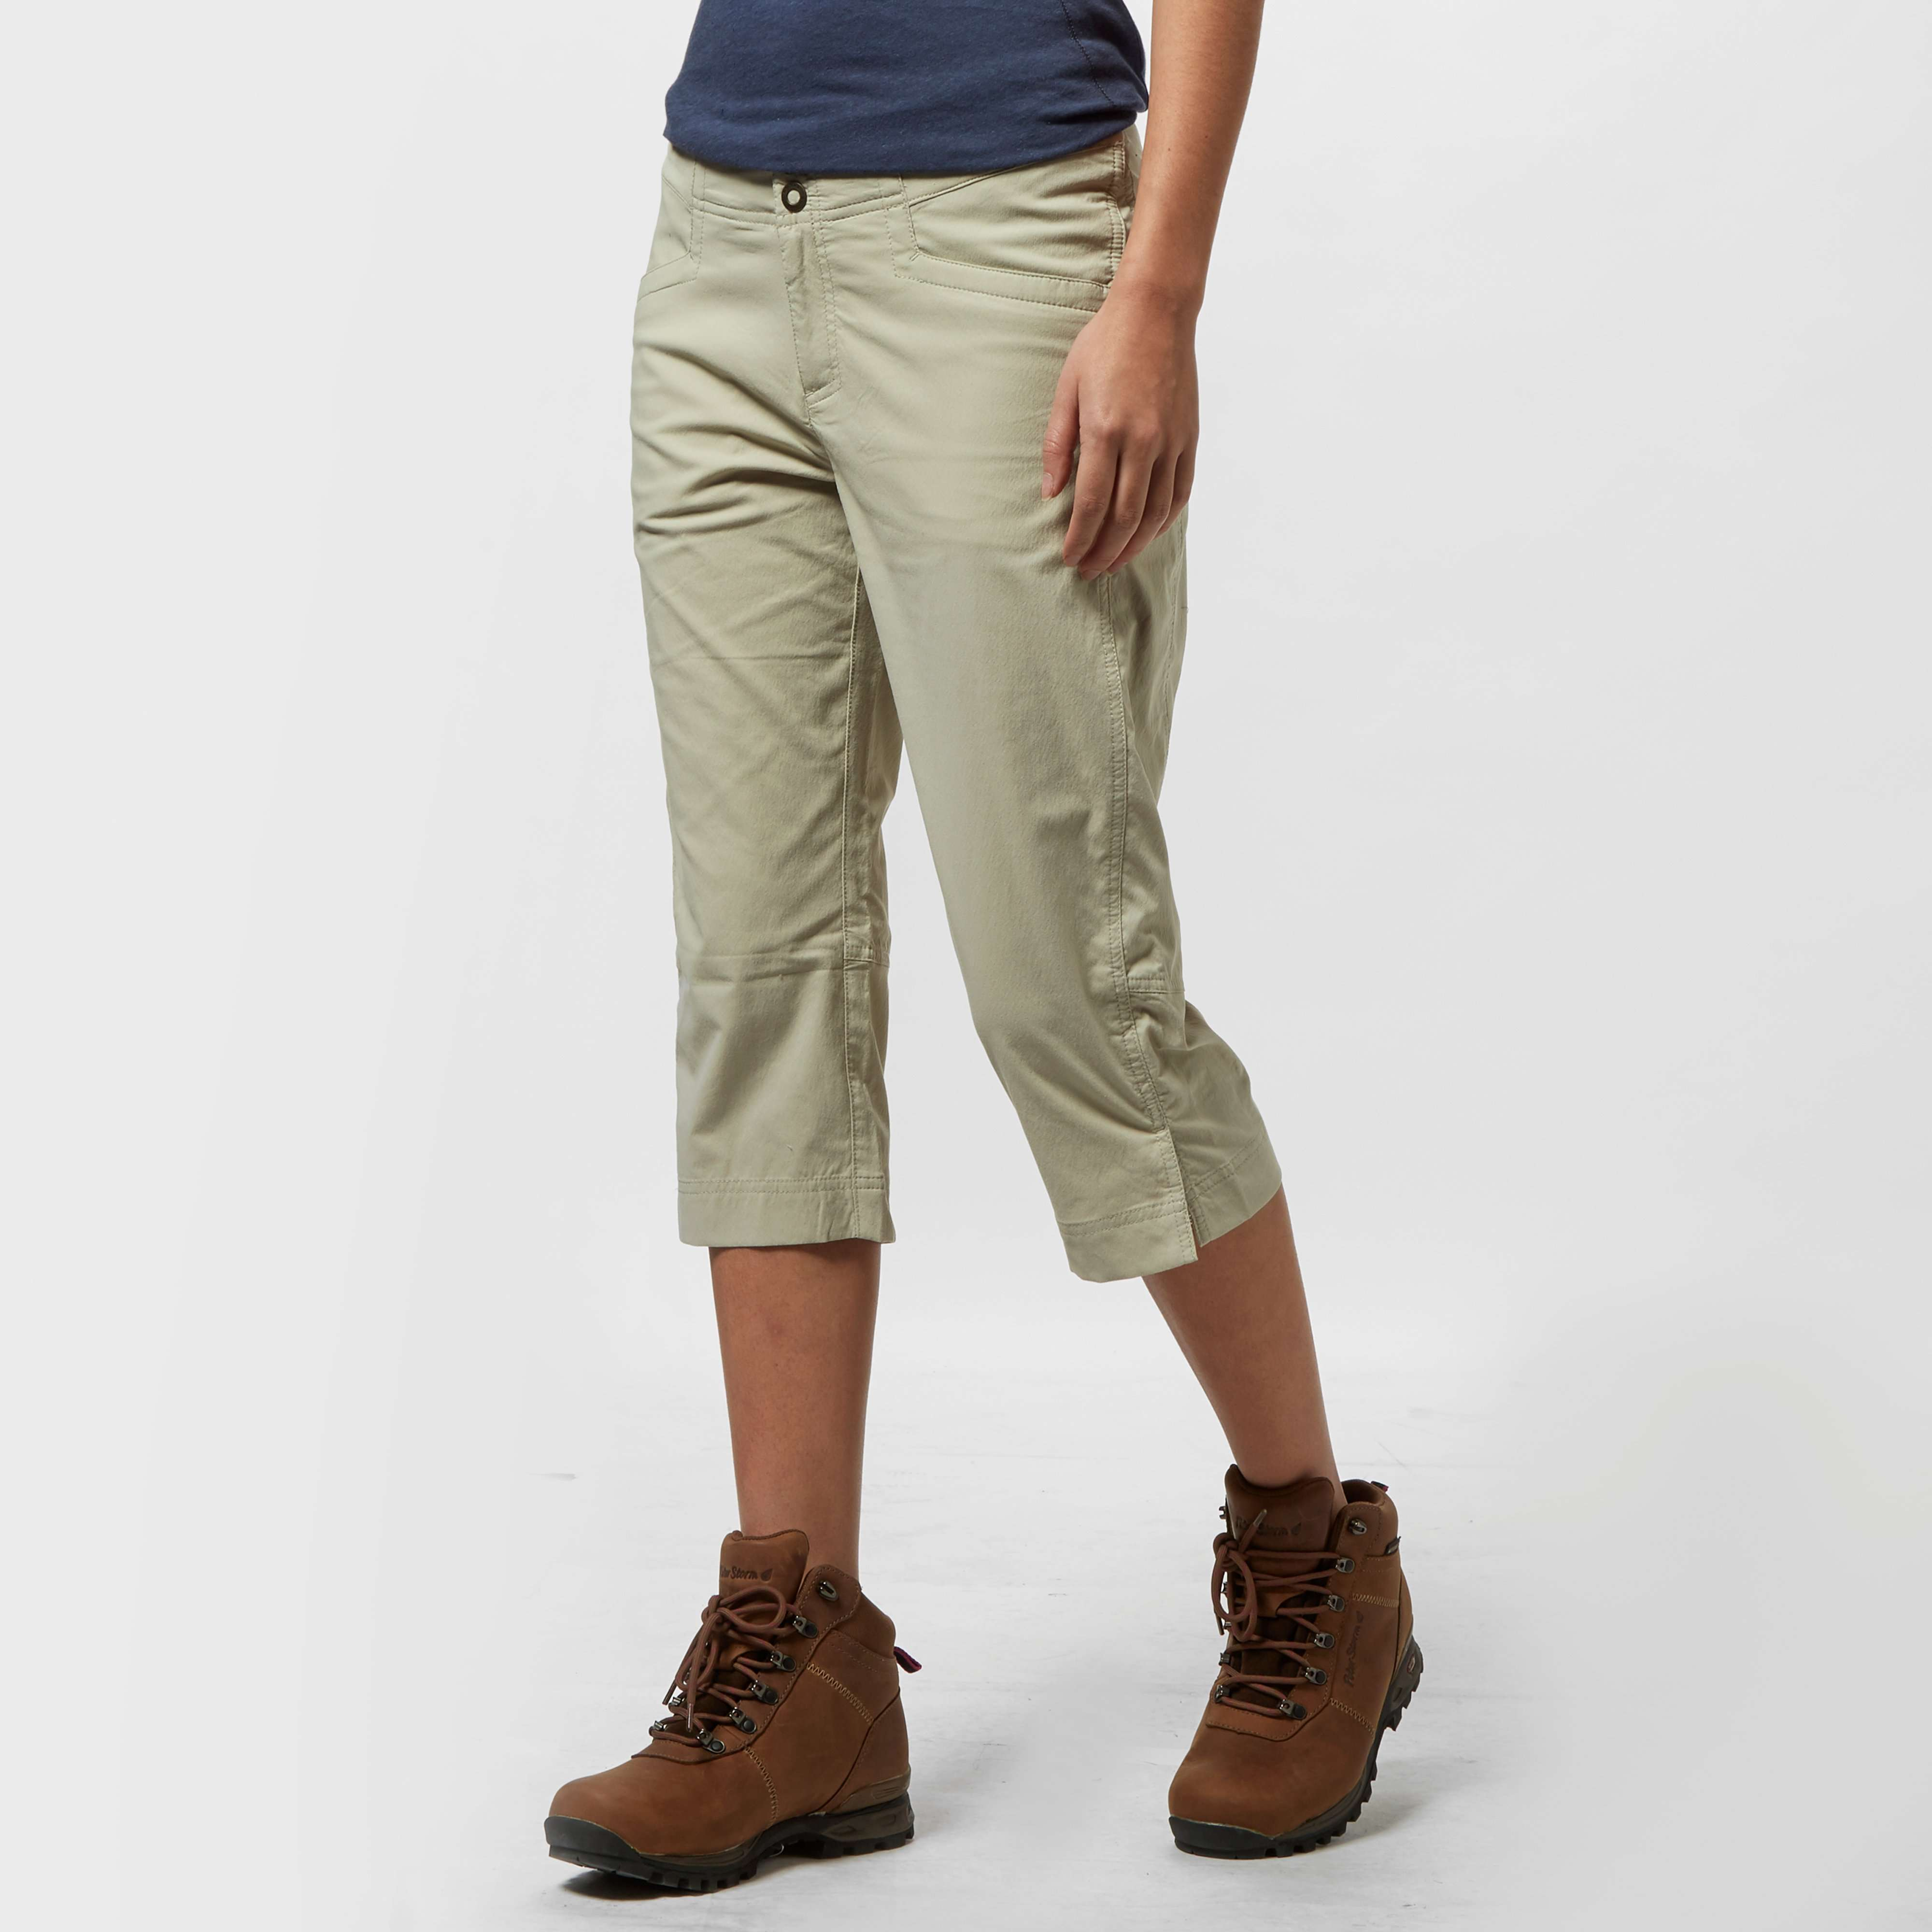 ROYAL ROBBINS Women's Jammer Trousers